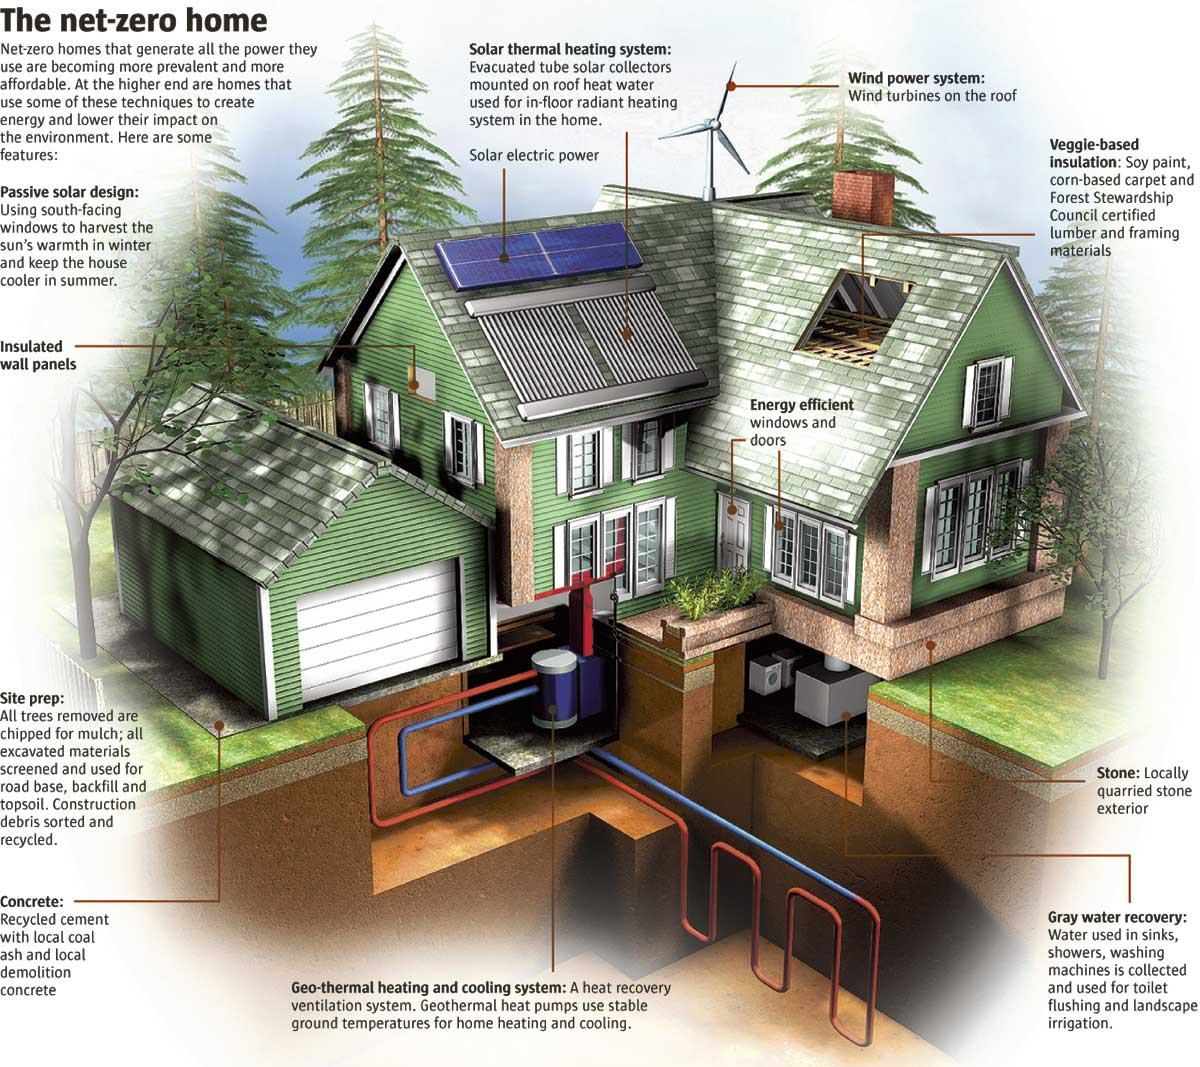 Images About Net Zero Homes On Pinterest Technology New - Most efficient home design